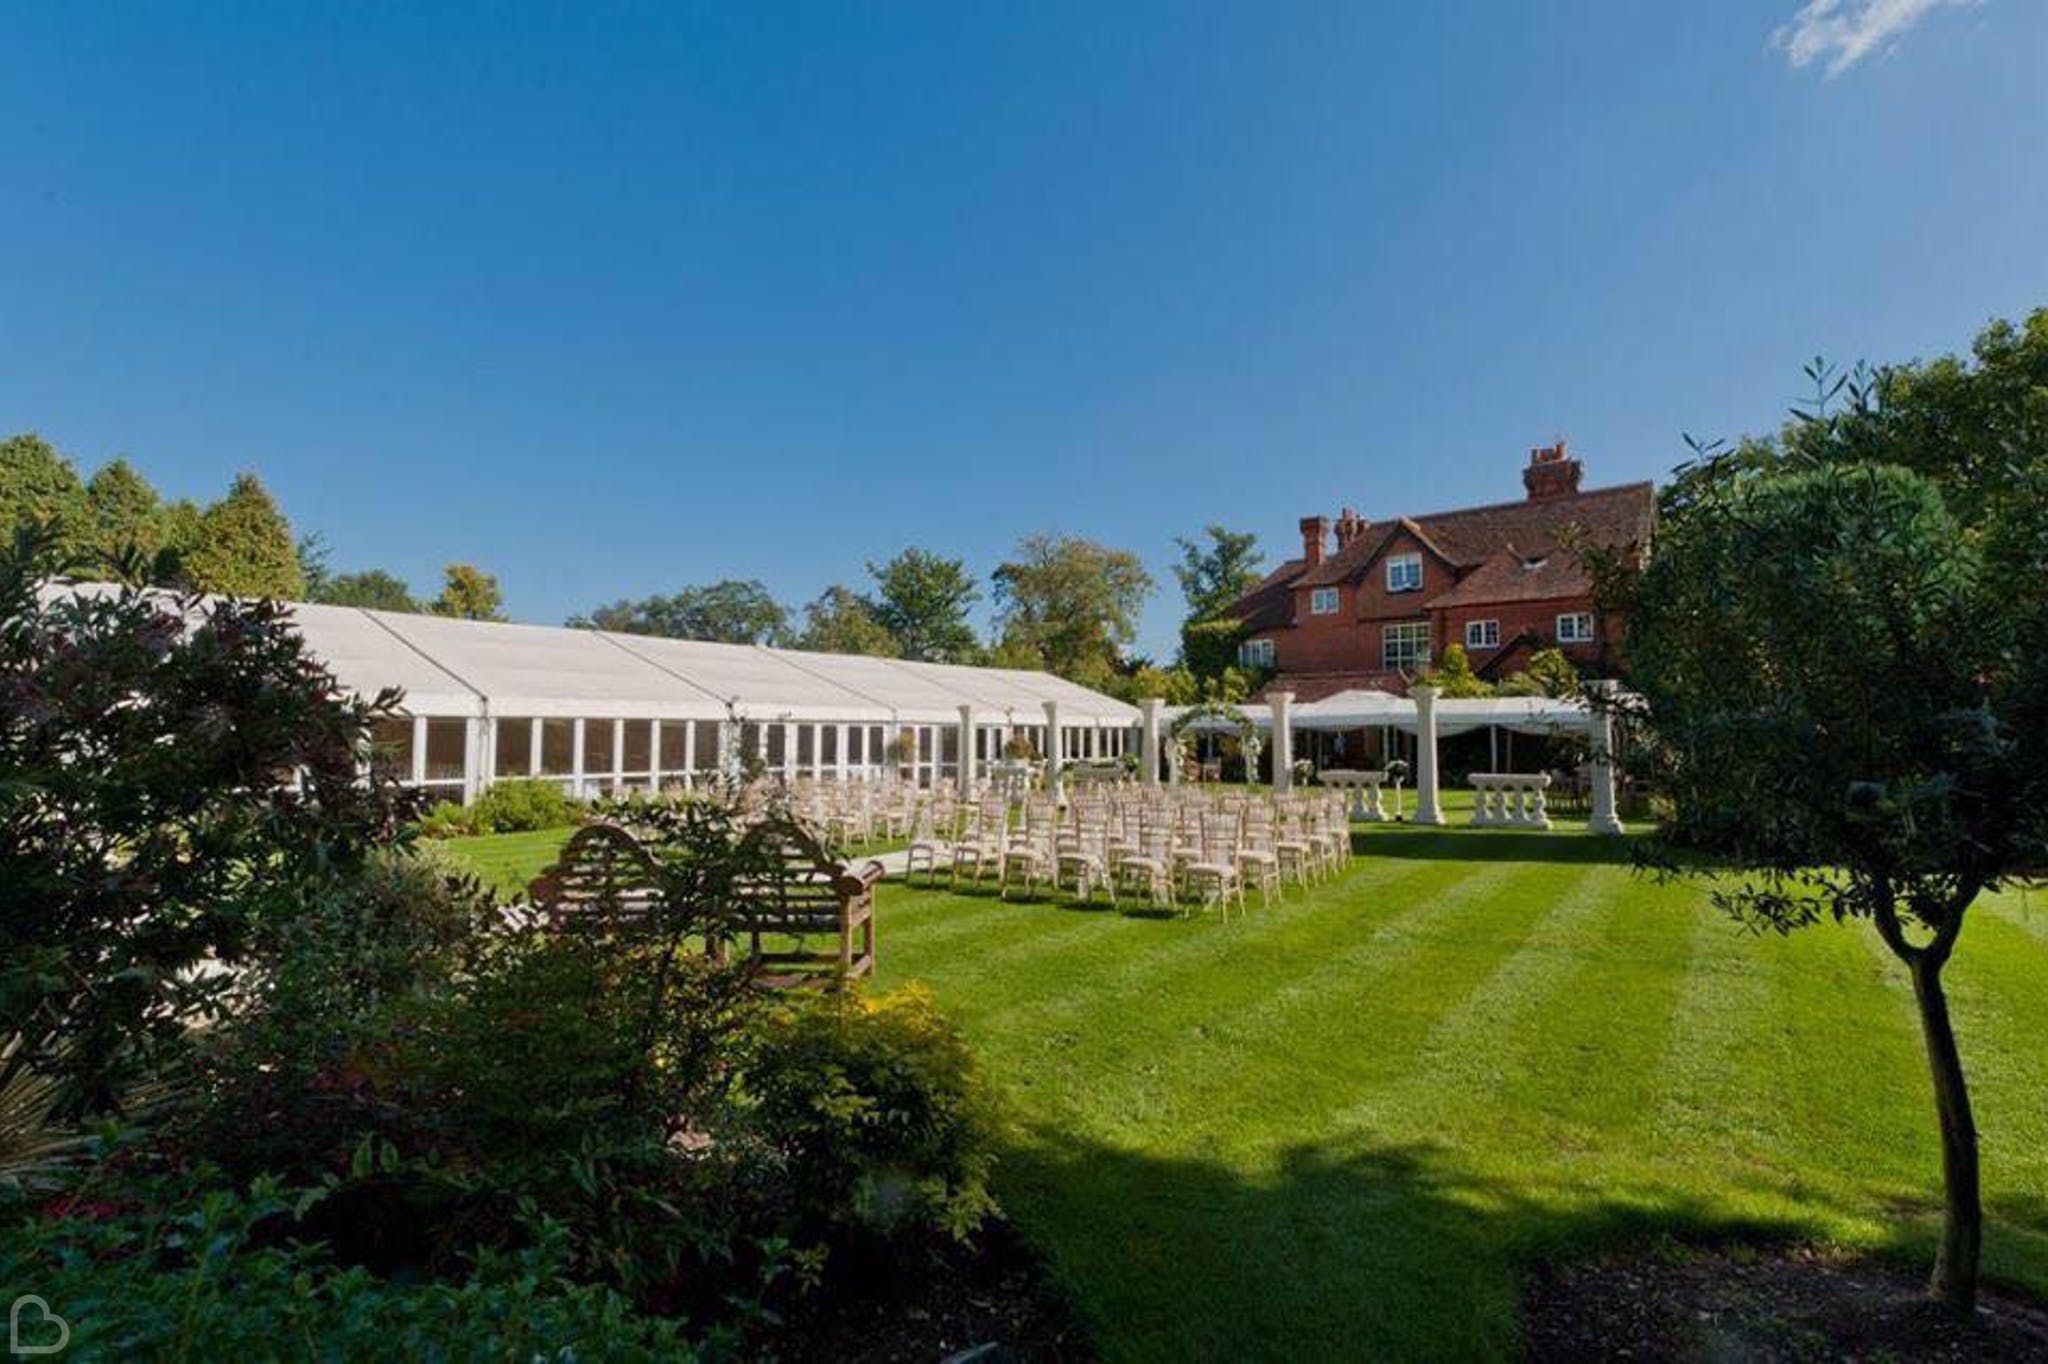 Trunkwell House set up for a wedding ceremony